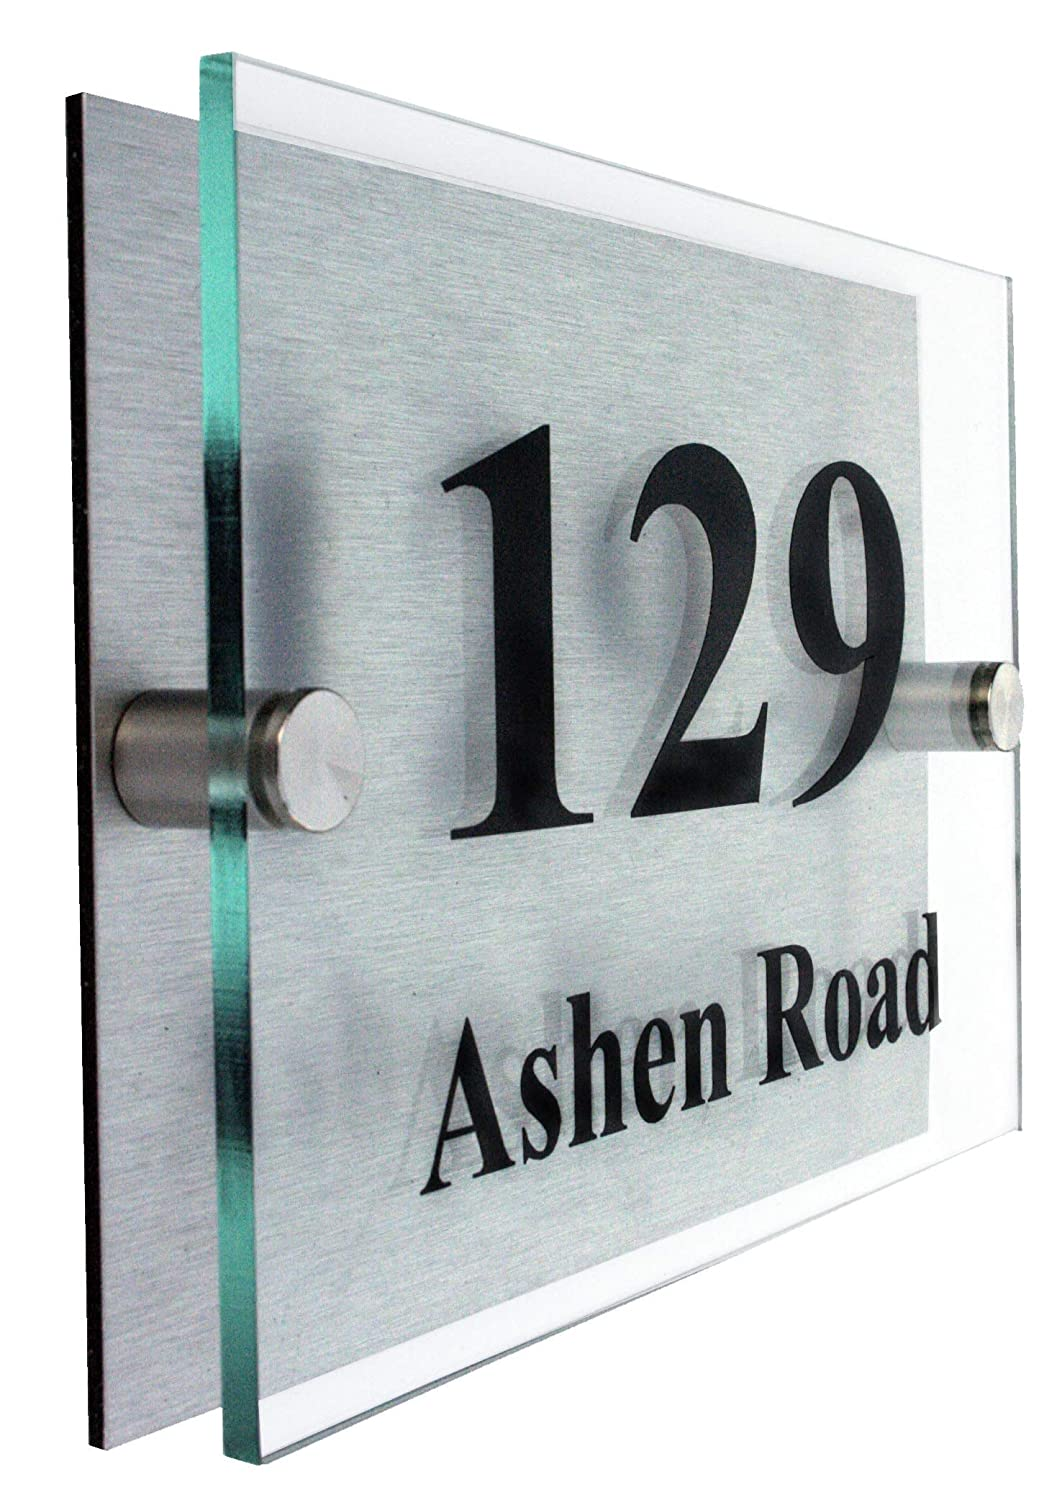 Premier qualityglass look acrylic choice of fonts 10 year guarantee personalised house number signs 2 part acrylic amazon co uk garden outdoors